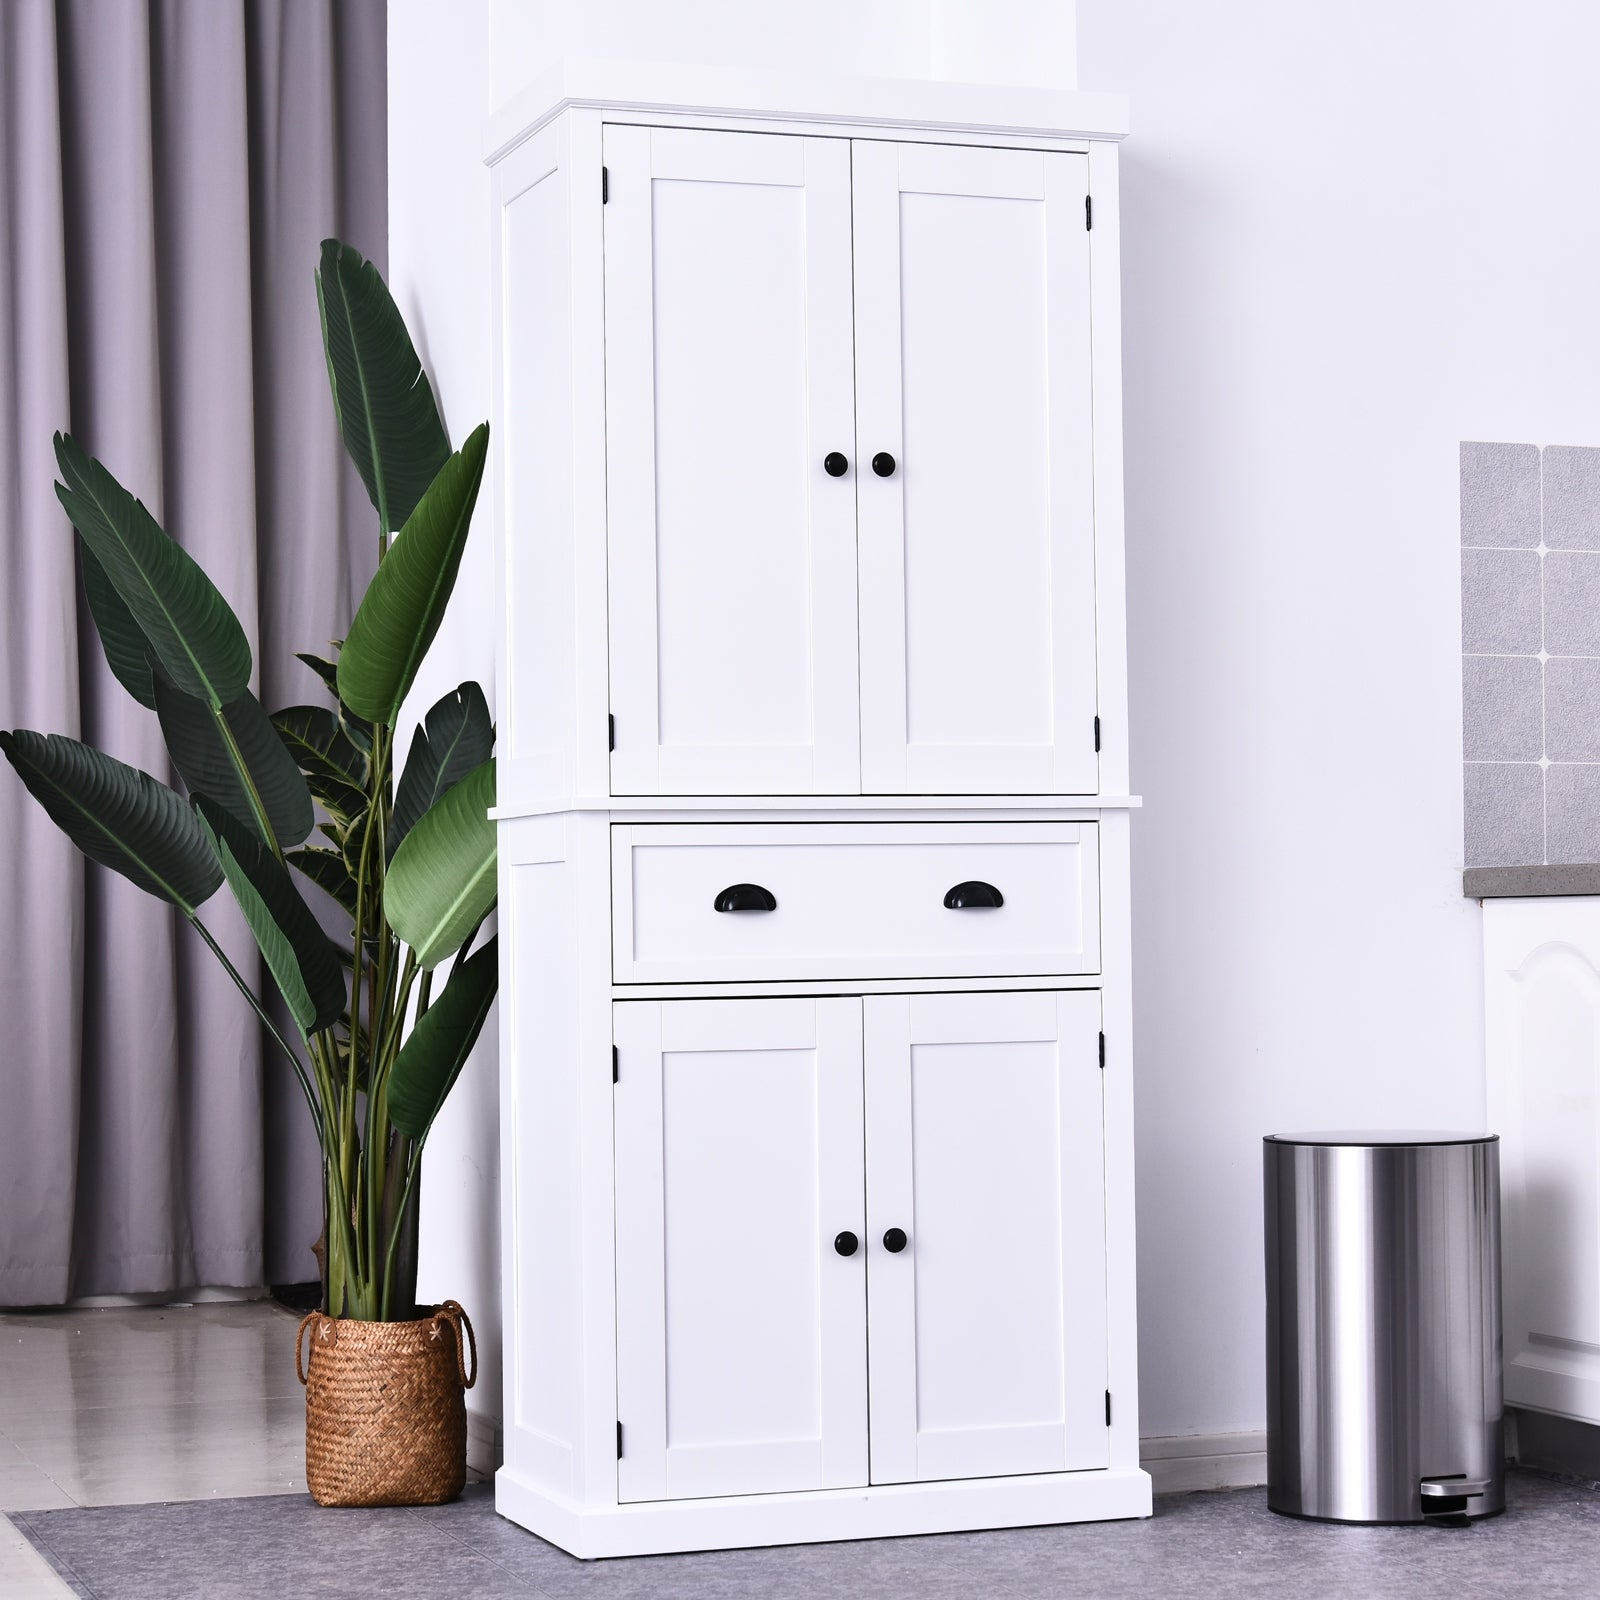 Homcom 72 Inch Traditional Freestanding Kitchen Cupboard Pantry Cabinet N A On Sale Overstock 30570079